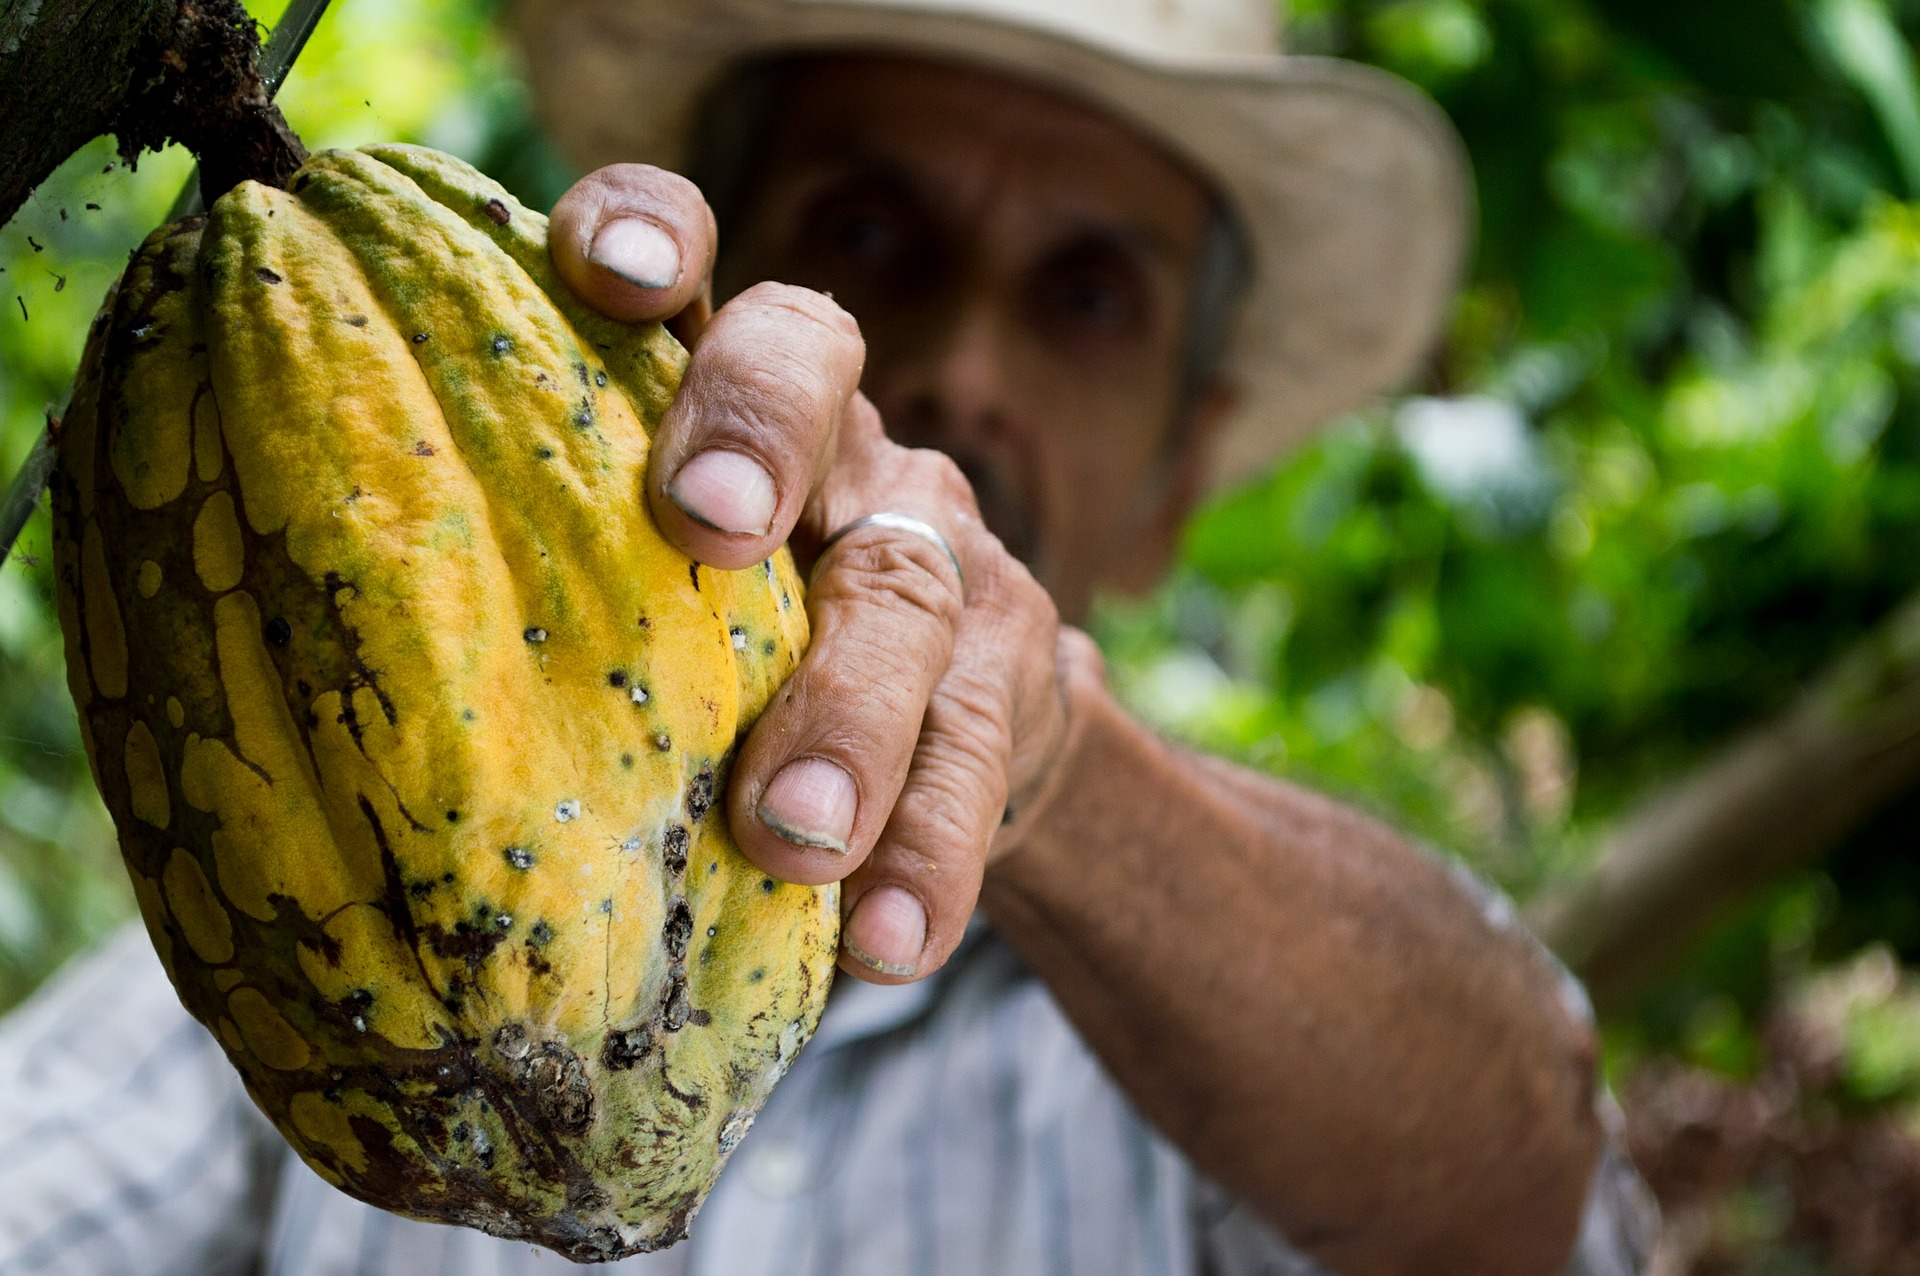 WHAT IS COLOMBIAN FOOD?